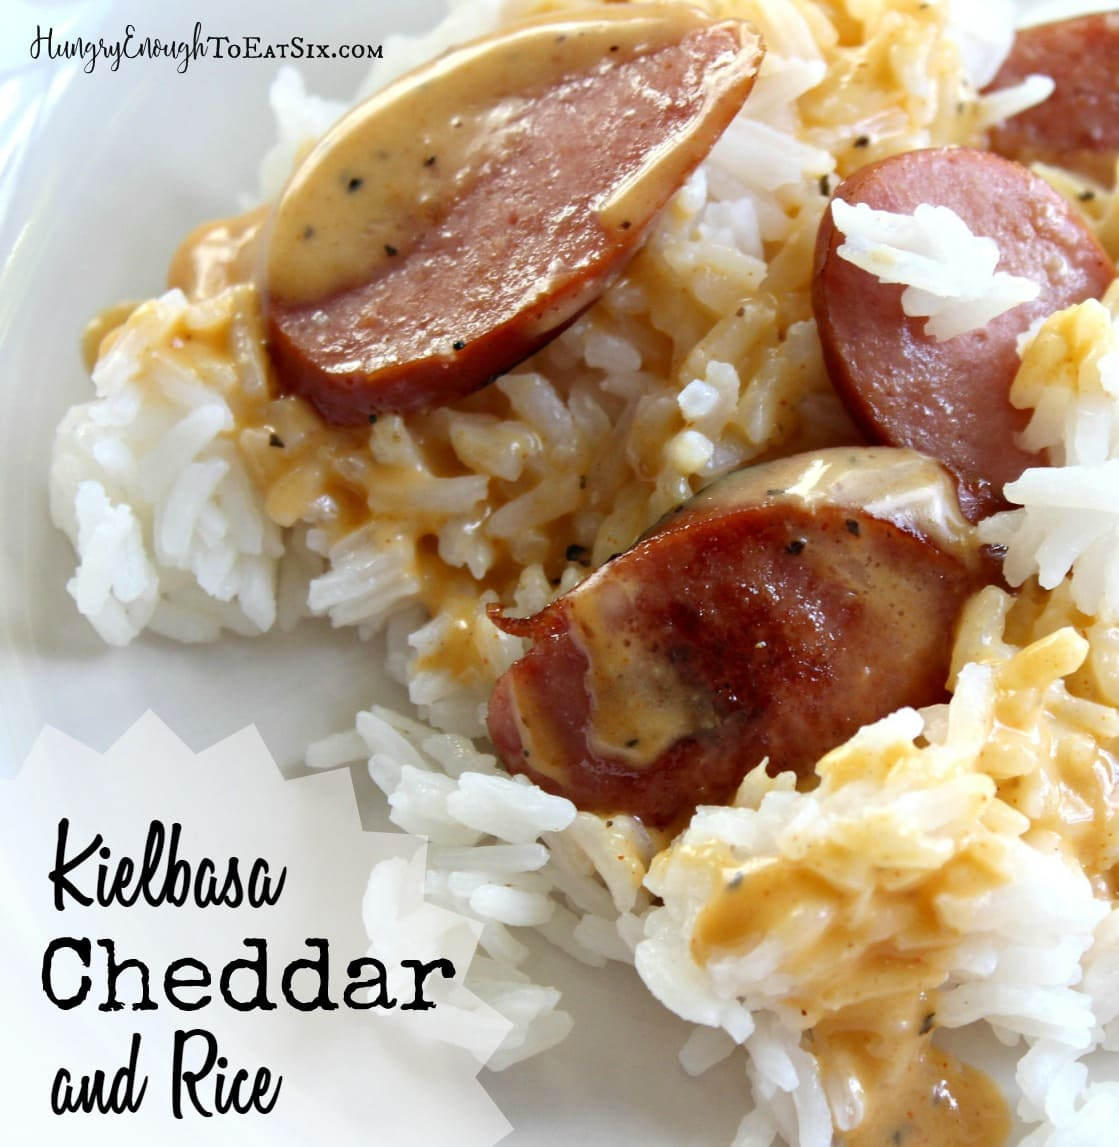 Image of Kiebasa, Cheddar sauce and rice recipe on a white plate